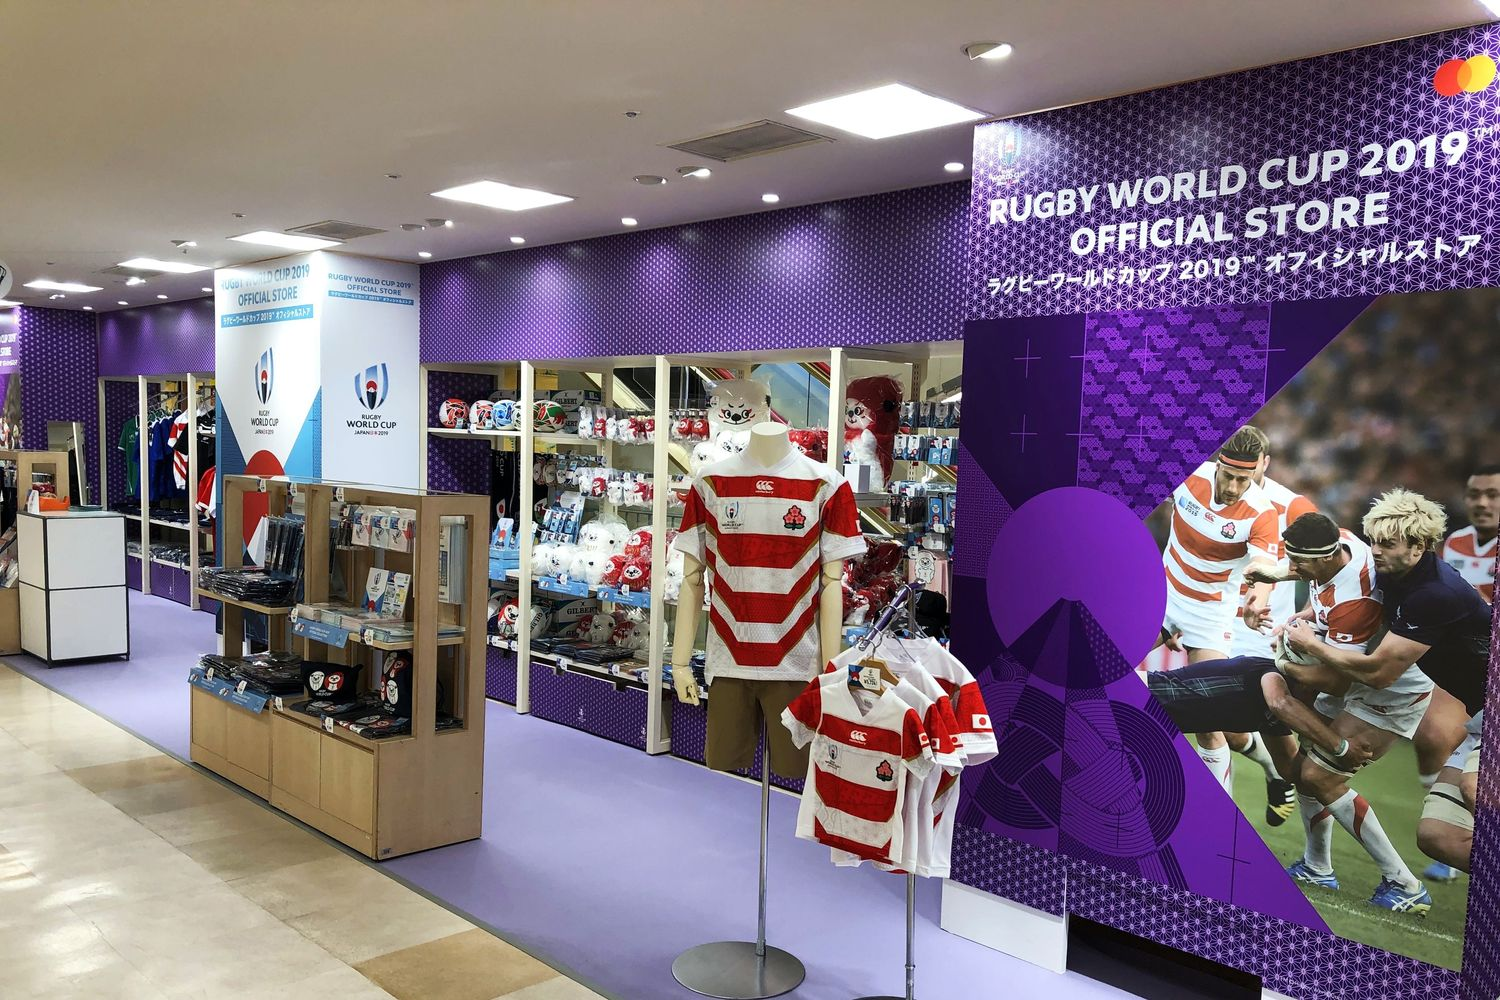 RWC 2019 OFFICAL STORE